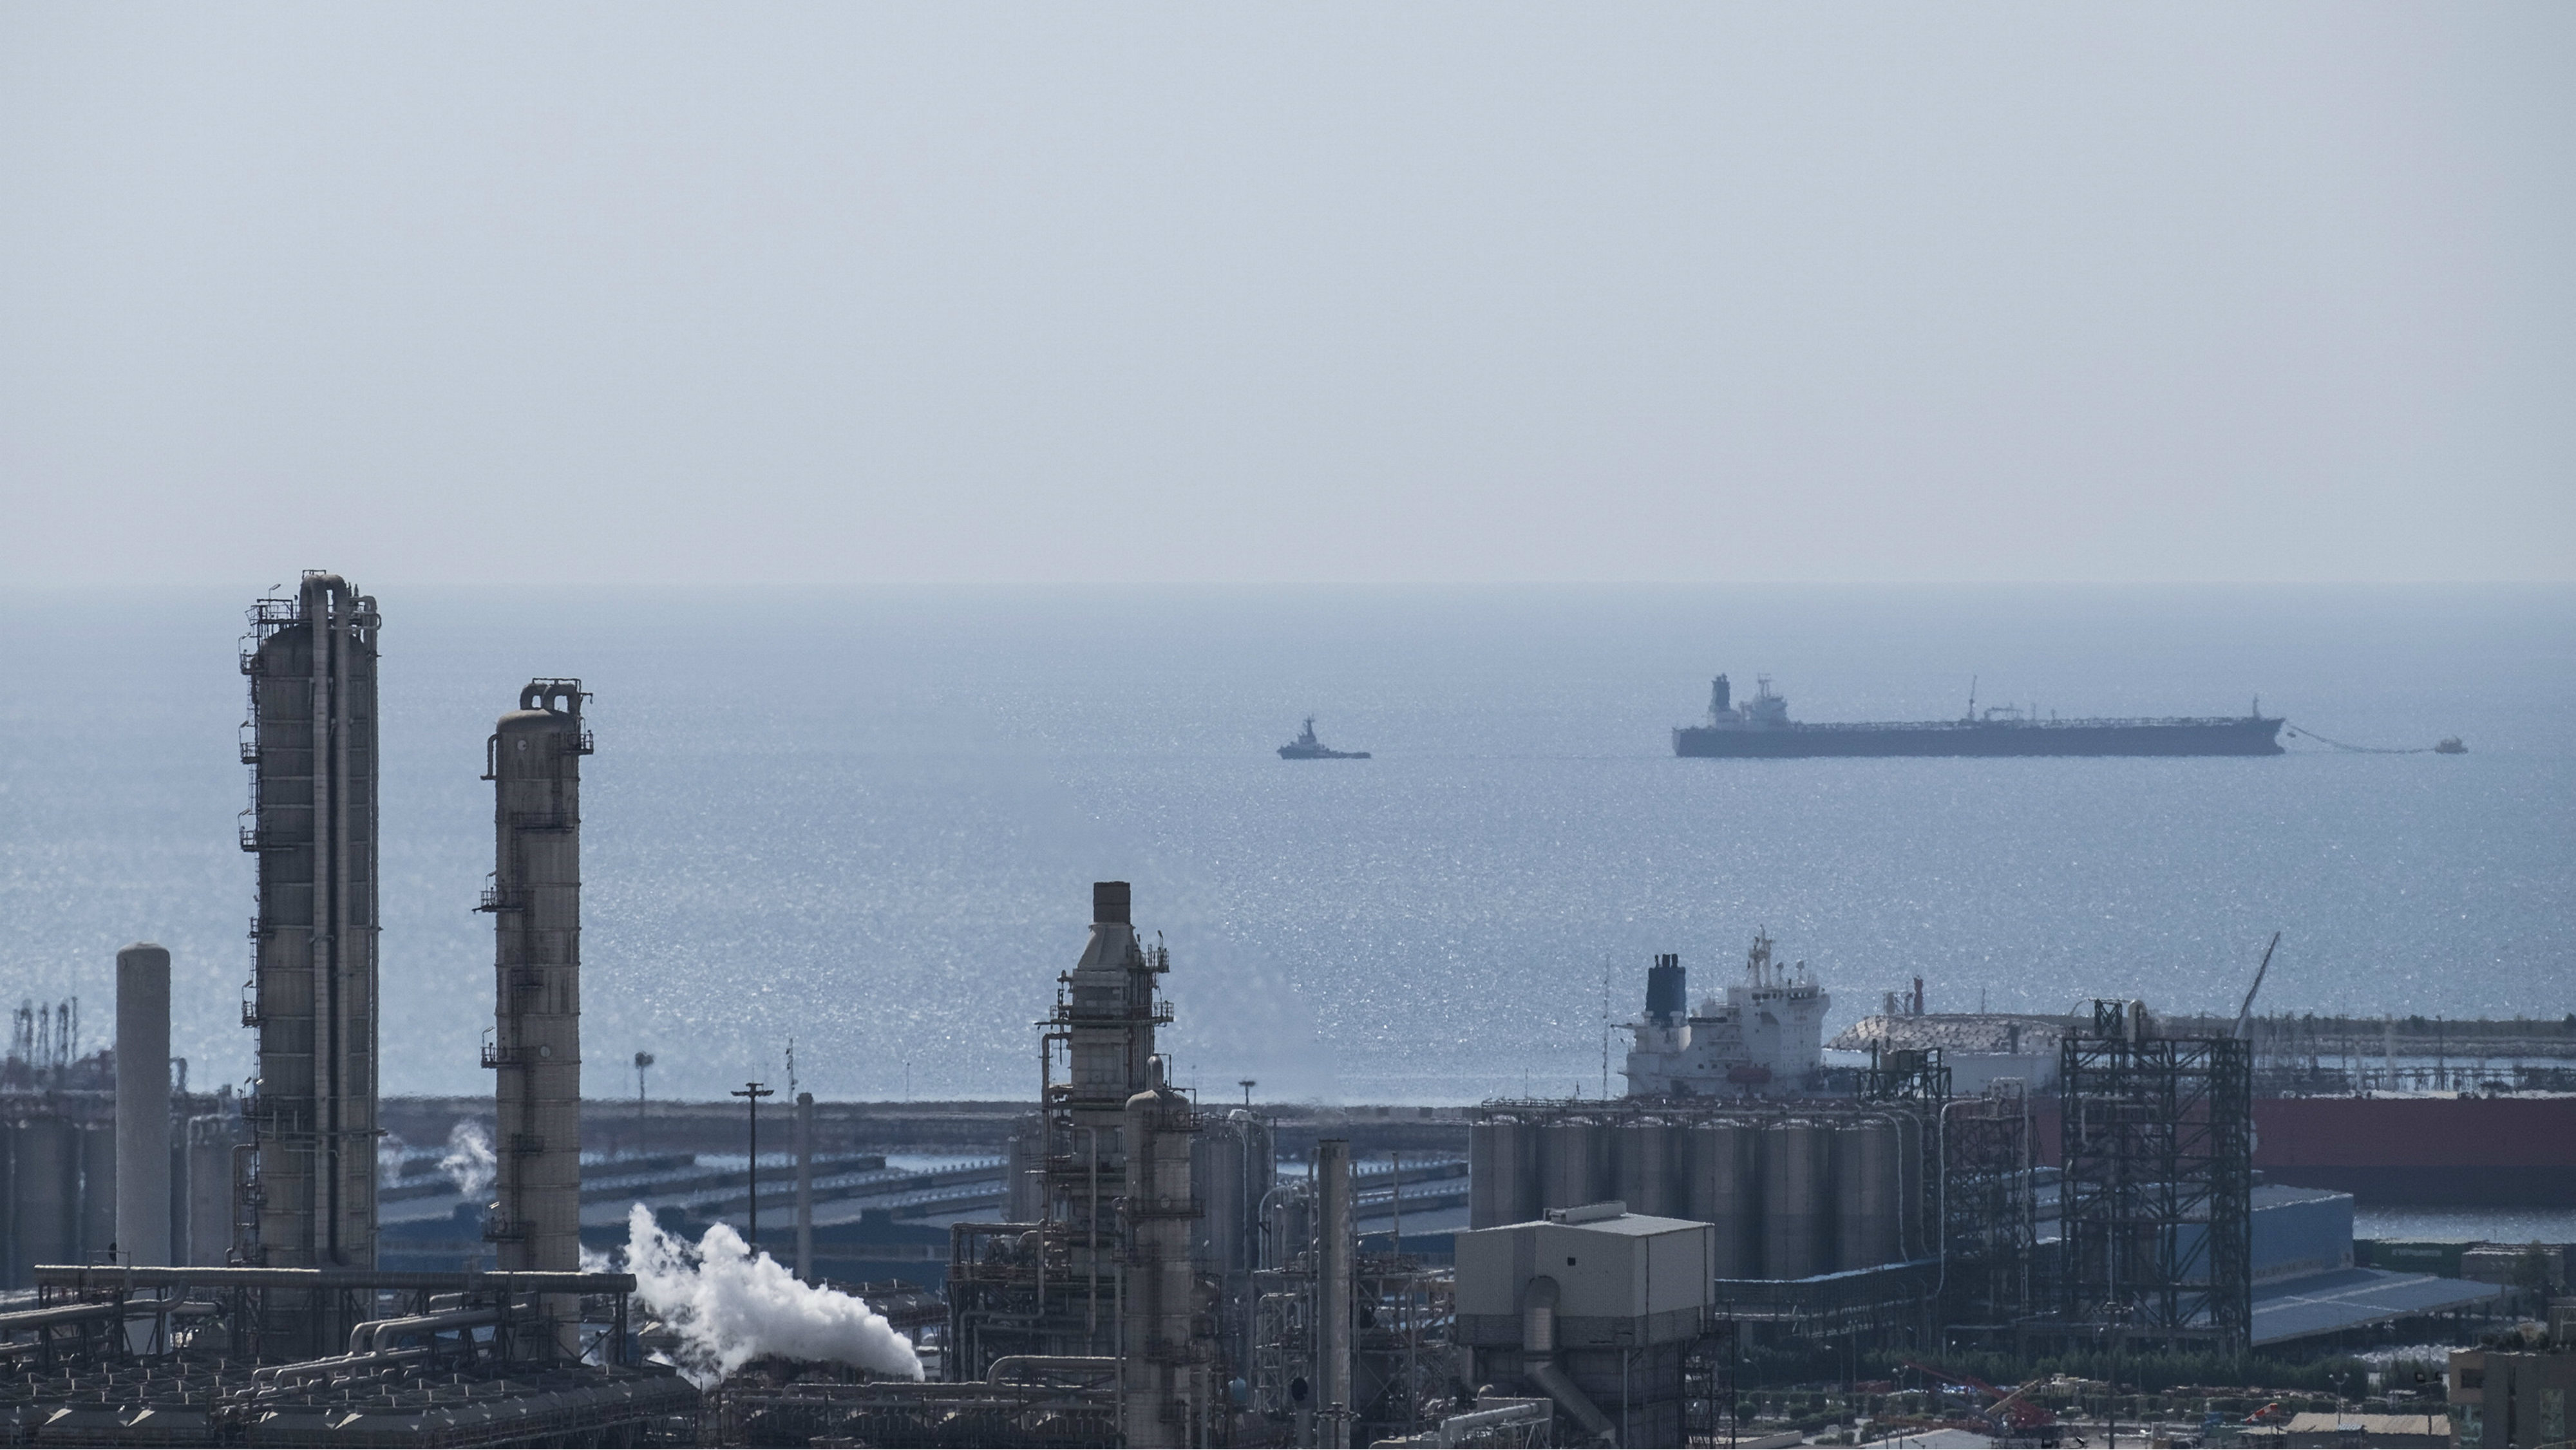 A unit of South Pars Gas field in Asalouyeh Seaport, north of Persian Gulf, Iran